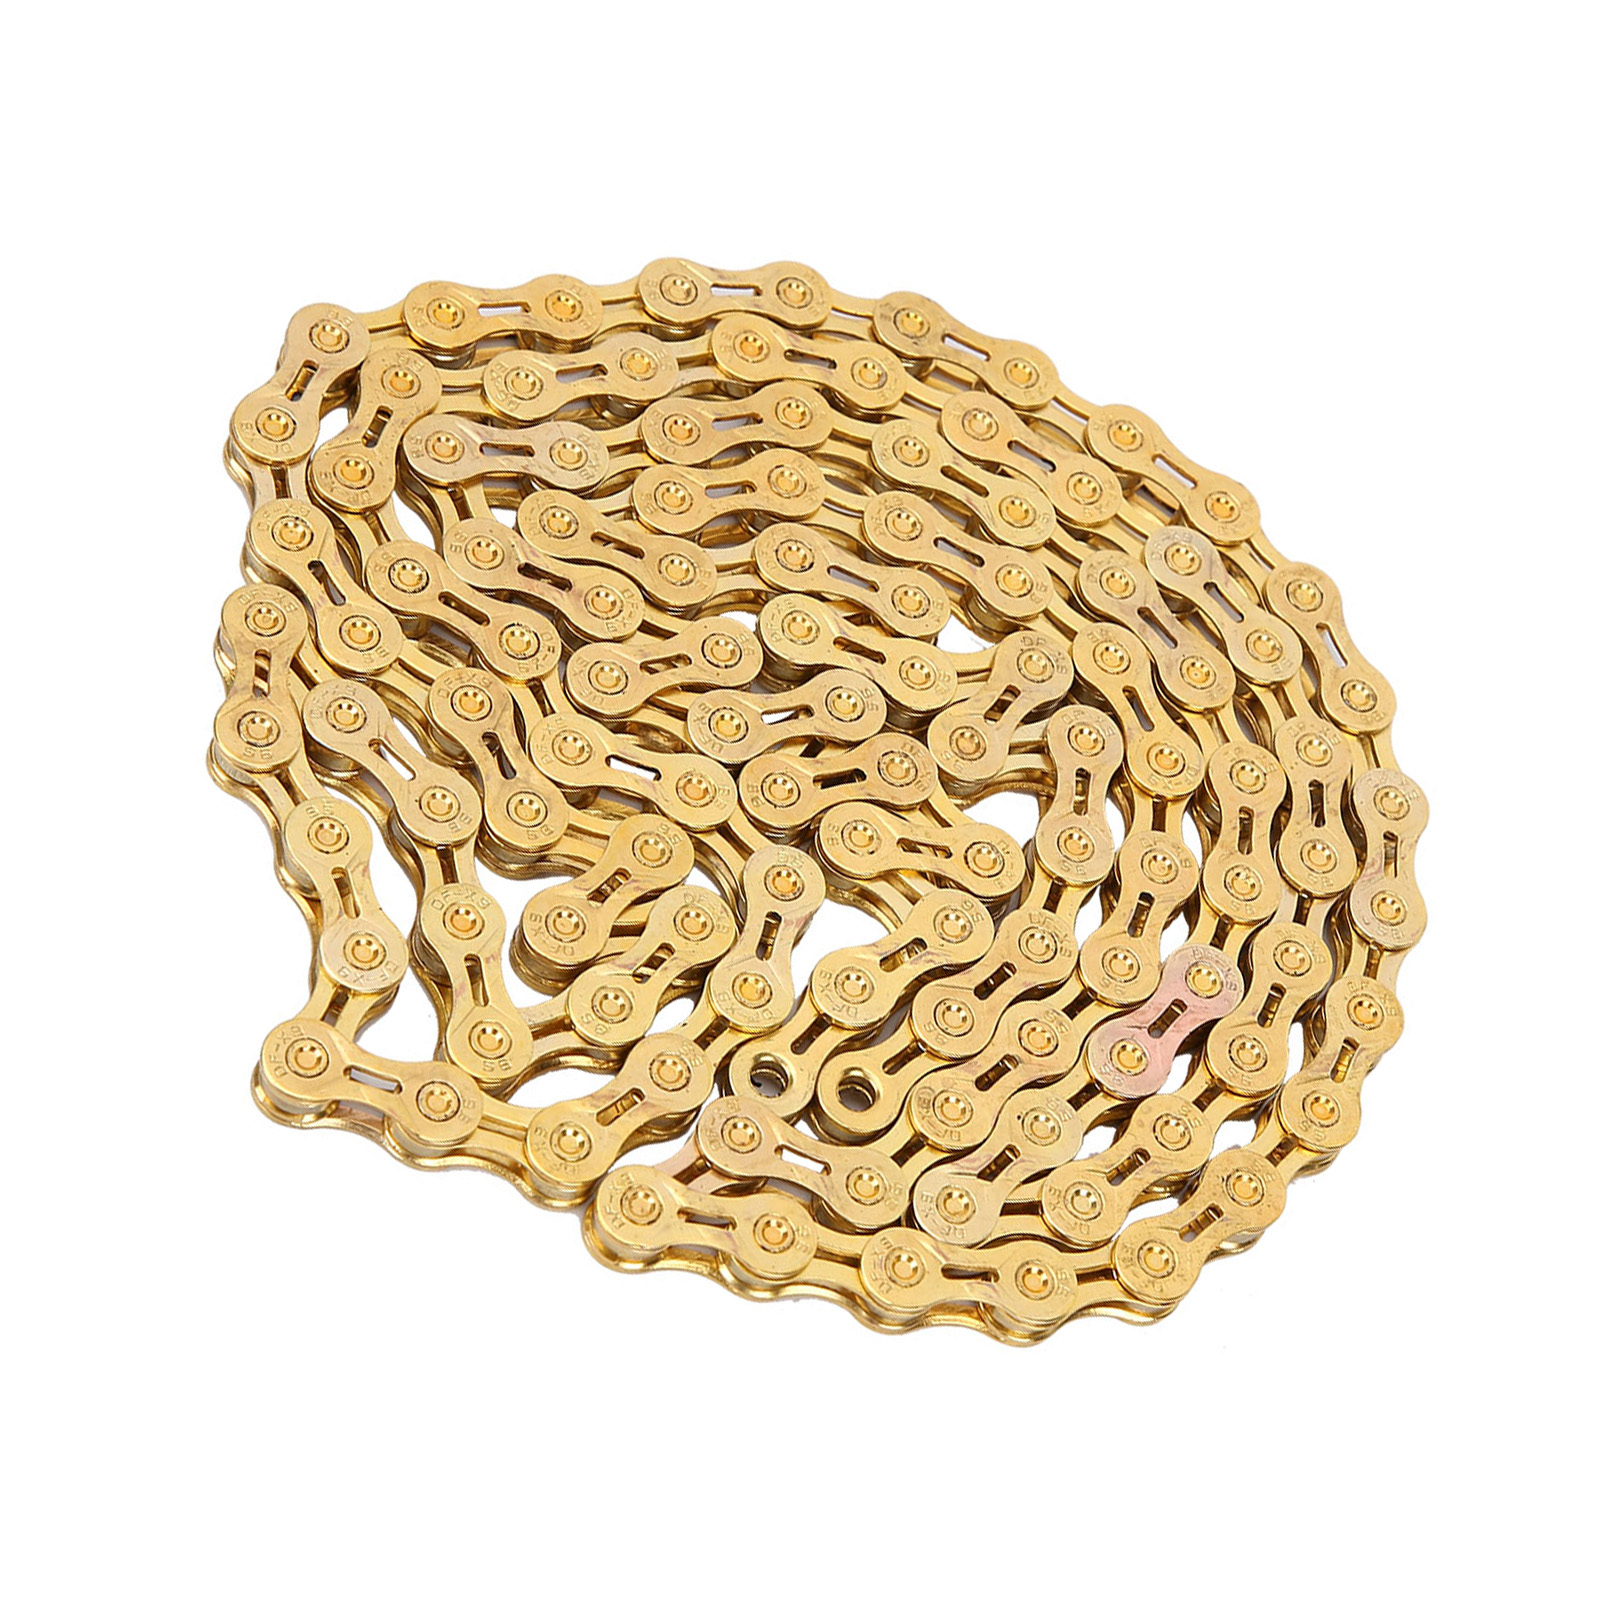 116-Links-Mountain-Road-Bike-Chain-9-10-Speed-MTB-Bicycle-Replacement-Accessory thumbnail 18